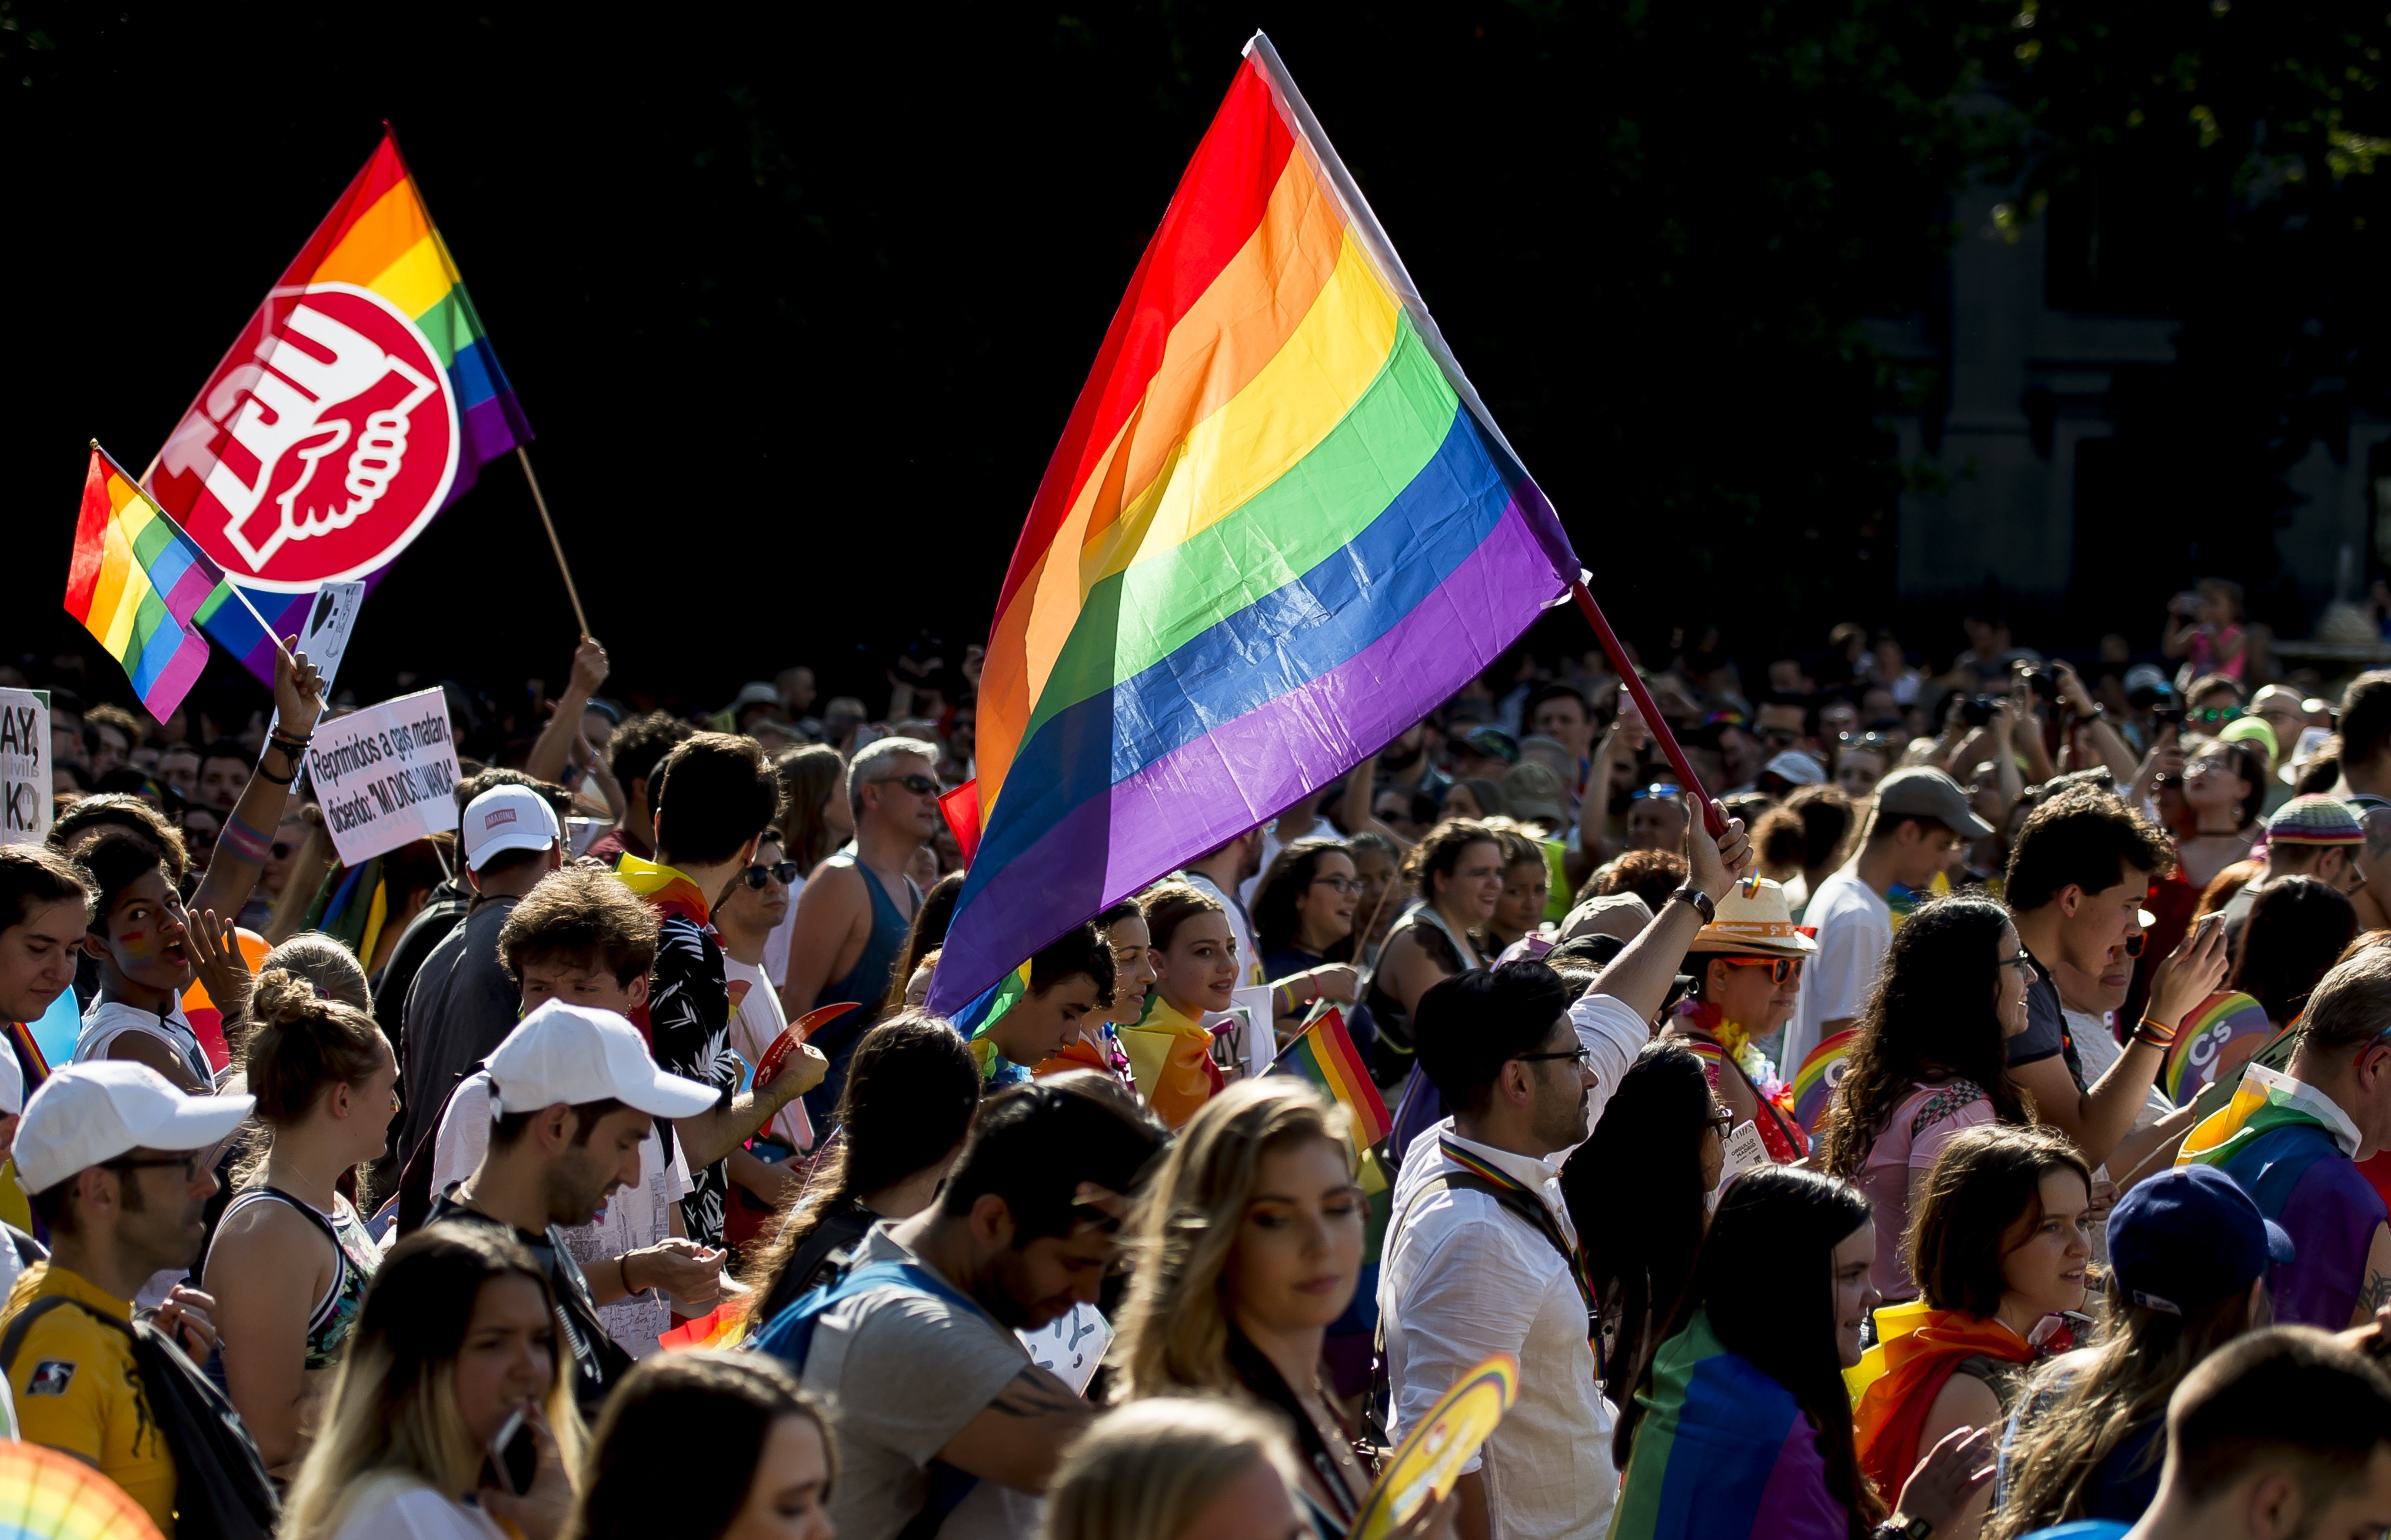 Thousands of LGBTQ members and supporters at the 2018 Gay and Lesbian Pride parade in Madrid, Spain   Photo: Getty Images